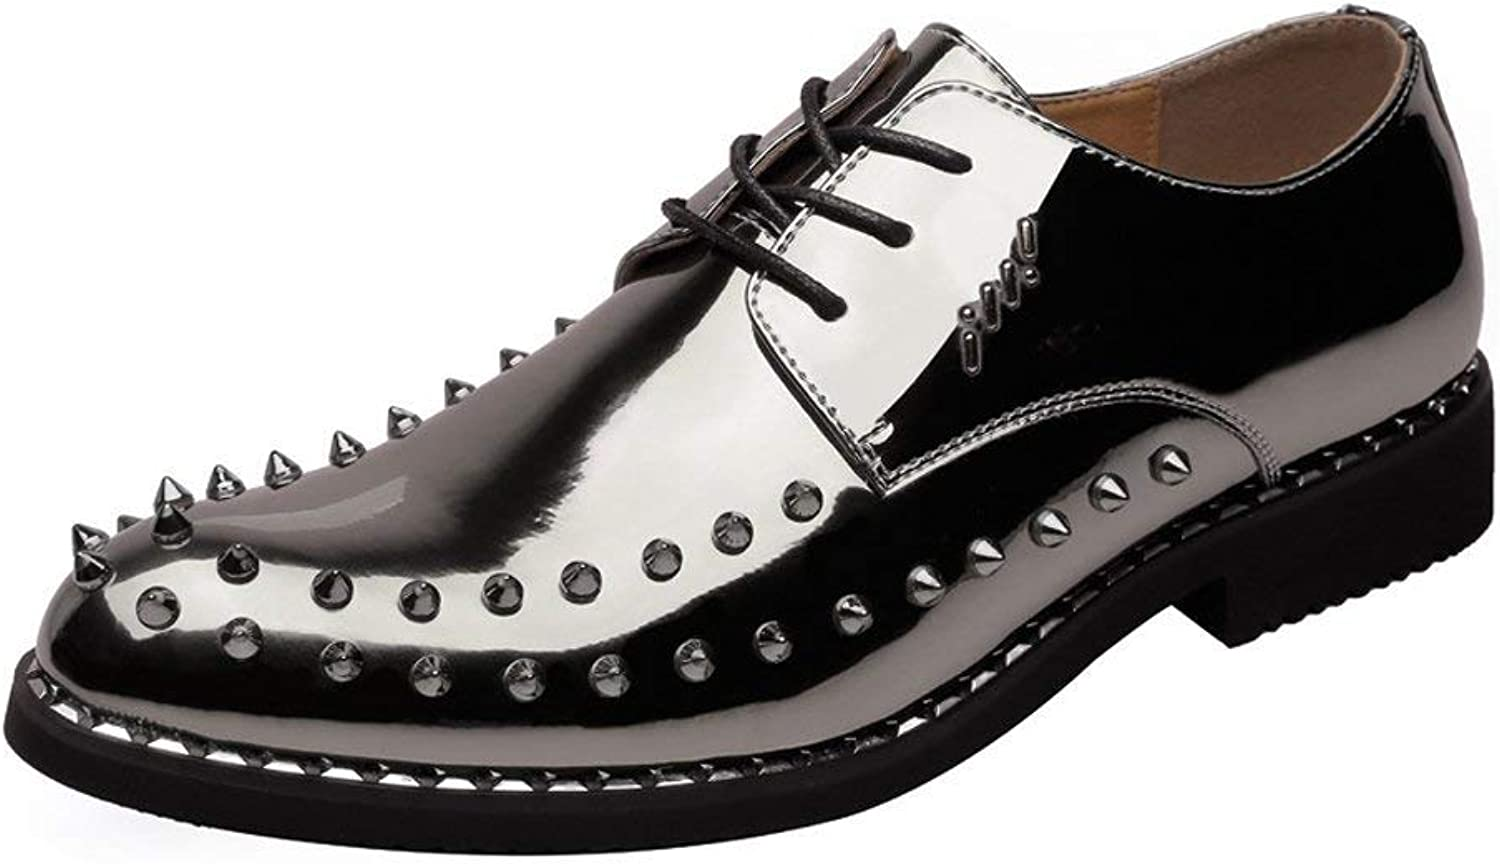 FuweiEncore 2018 Men's Punk Style shoes Smooth Pu Leather Prom Loafer Lace Up Breathable Lined Oxfords with Studs (color  Black, Size  44 EU) (color   Coffee, Size   42 EU)